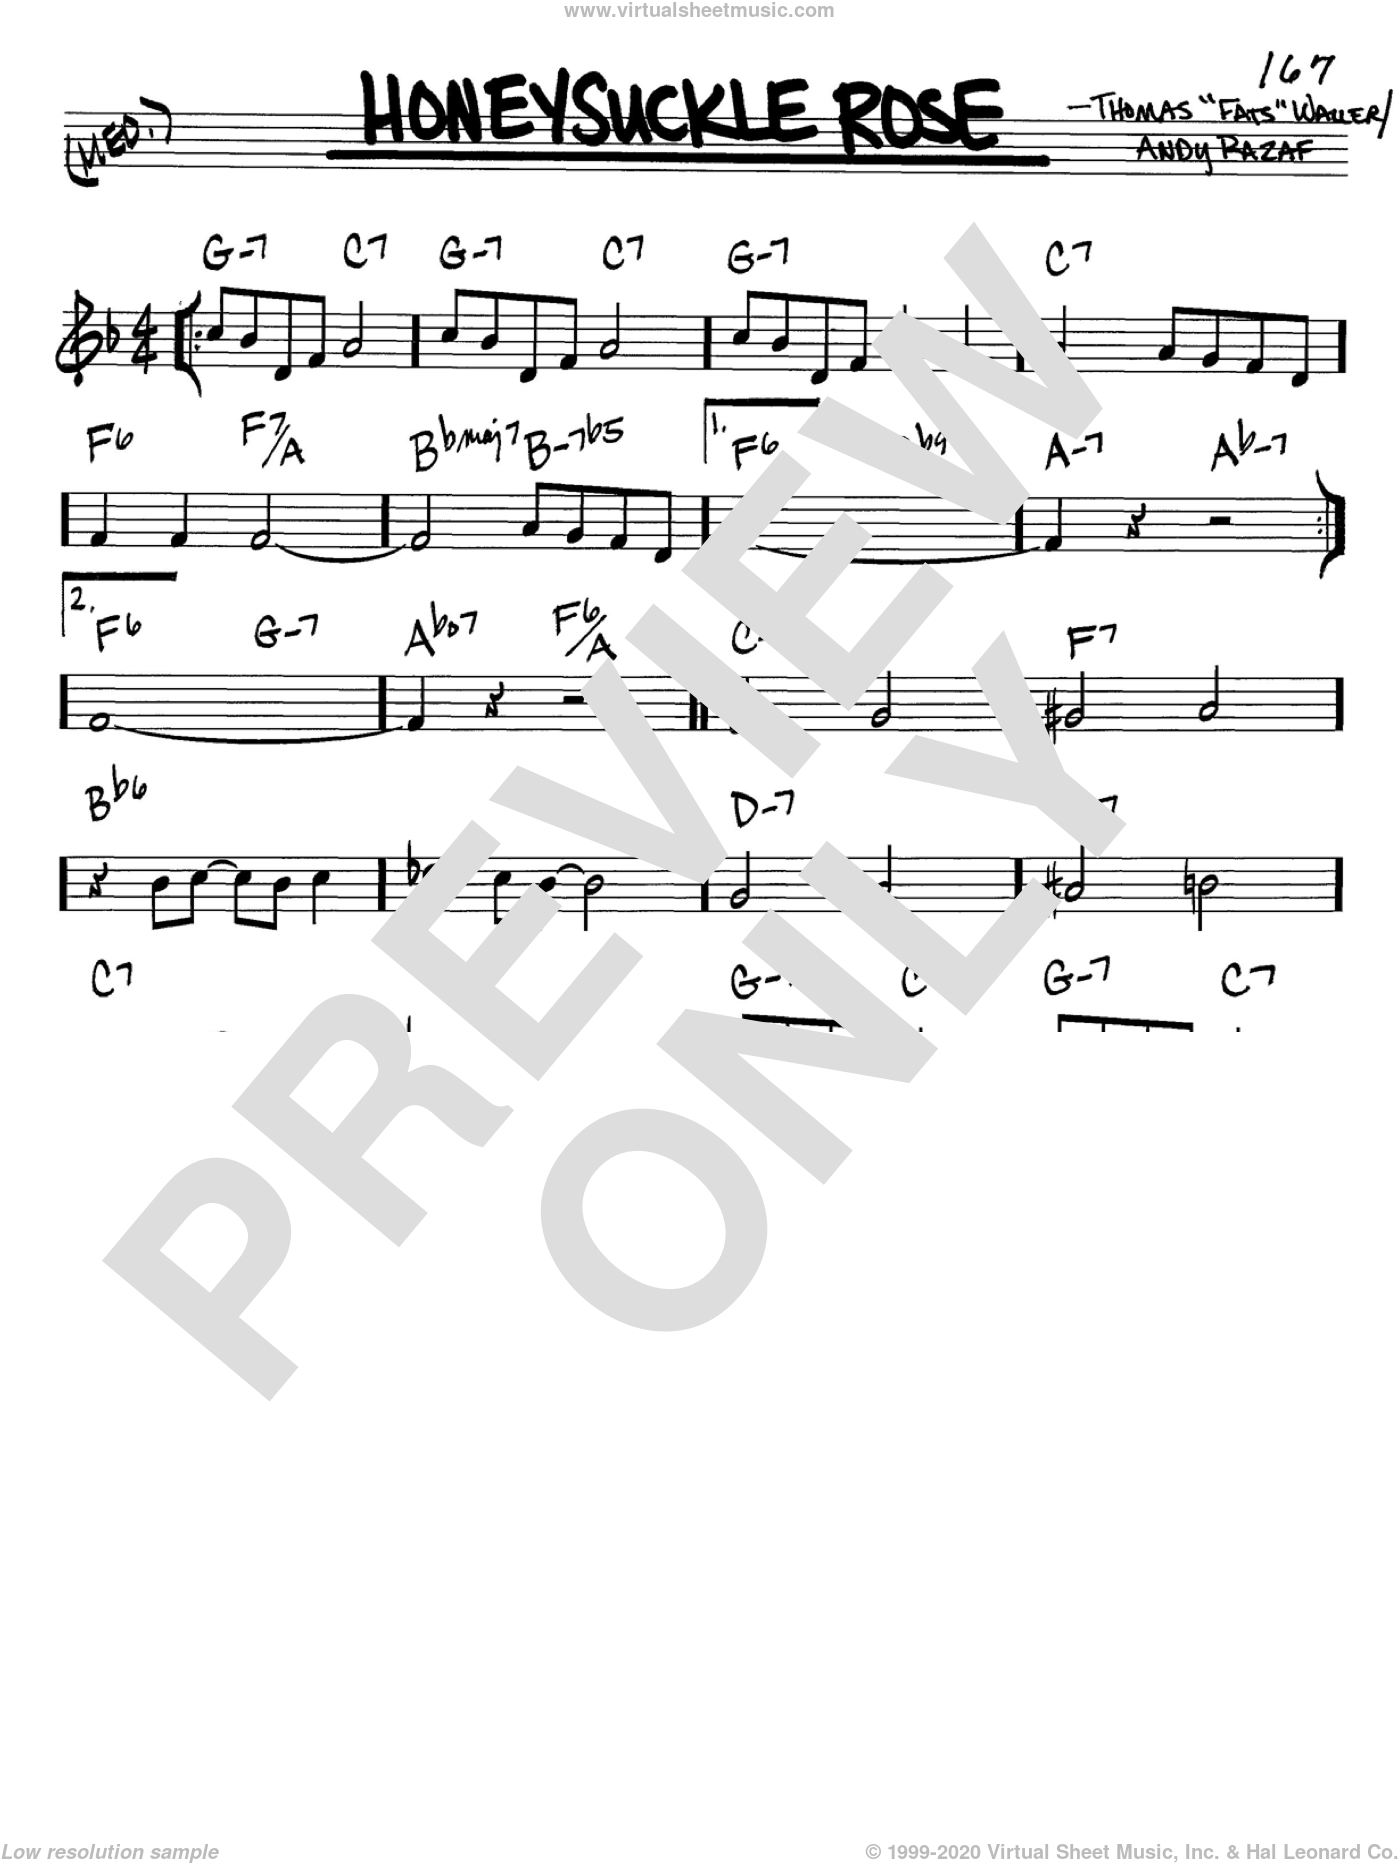 Honeysuckle Rose sheet music for voice and other instruments (C) by Thomas Waller, Django Reinhardt and Andy Razaf. Score Image Preview.